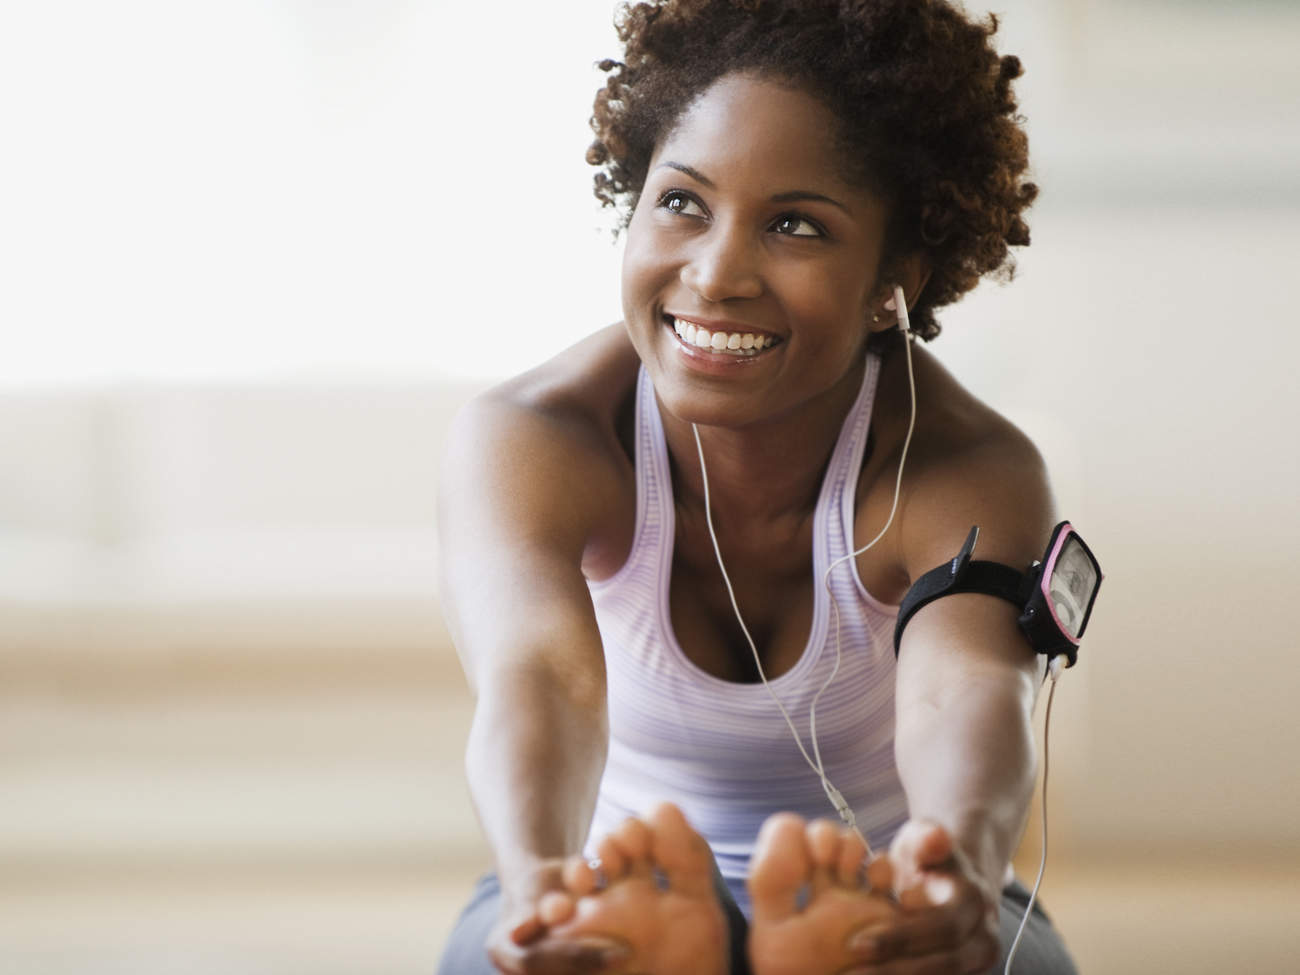 exercise fitness workout working out resolution fitness